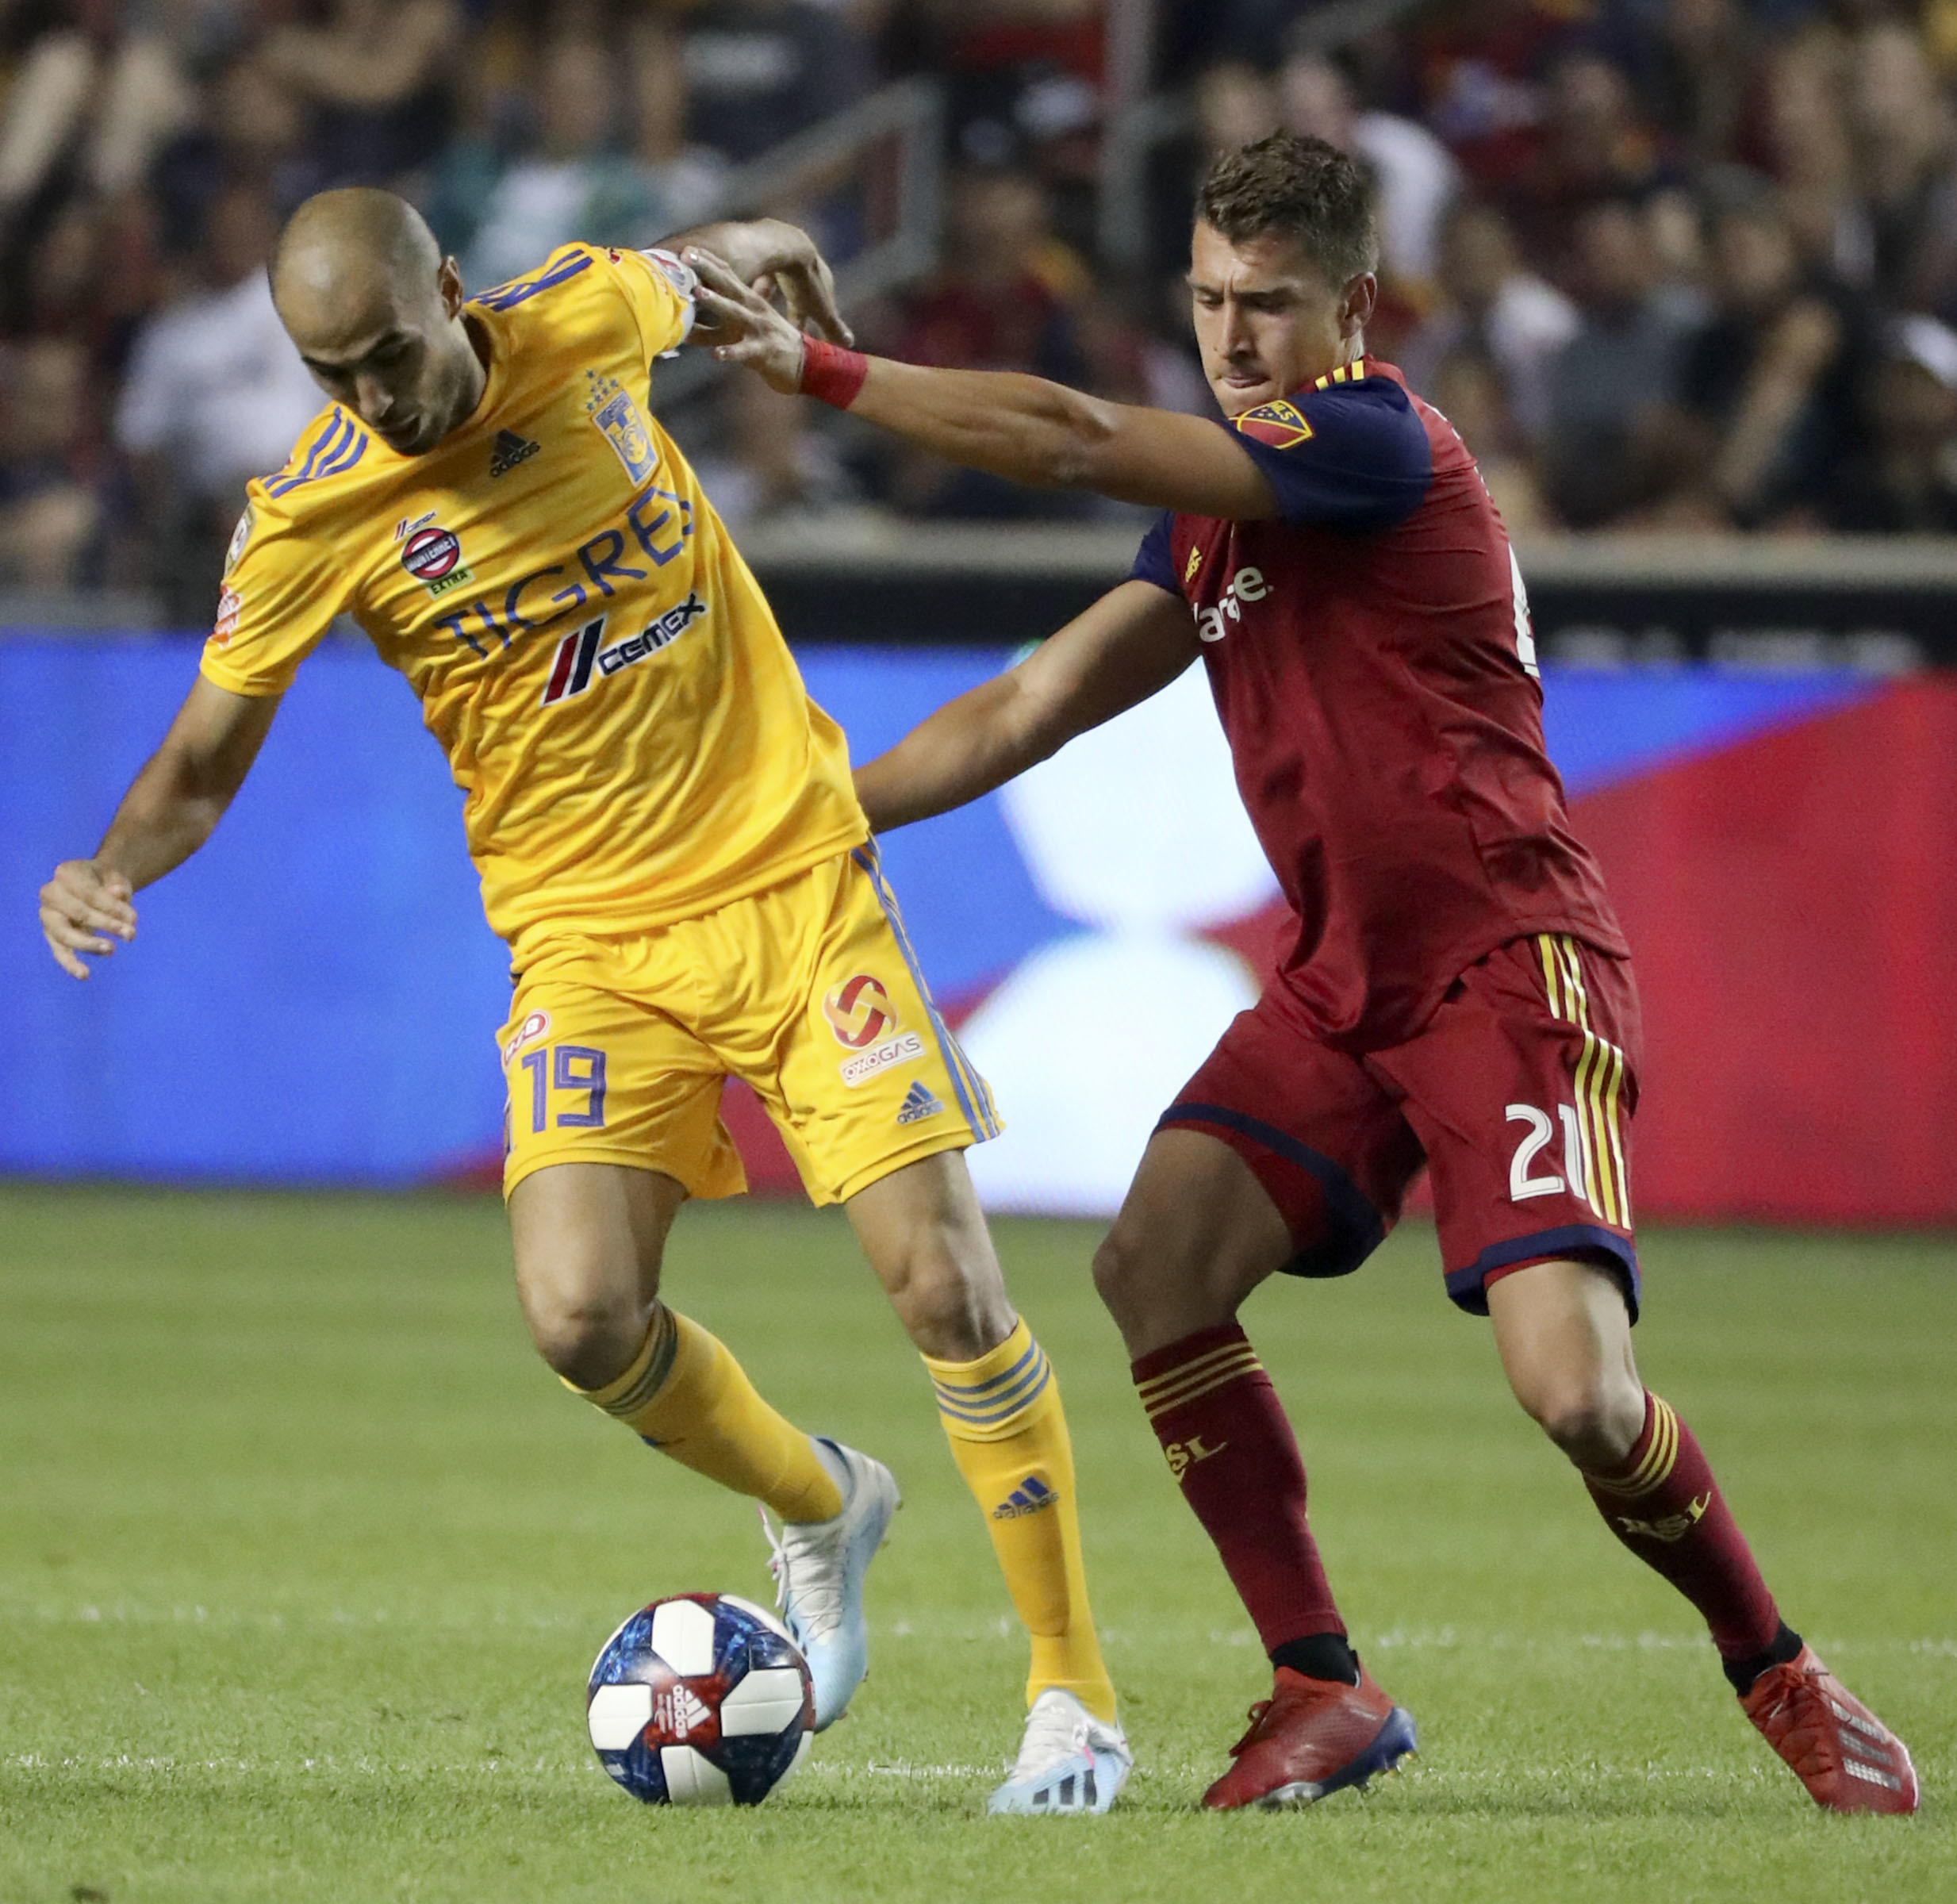 Real Salt Lake forward Tate Schmitt (21) pushes UANL Tigres midfielder Guido Pizarro (19) as he kicks the ball during a Leagues Cup soccer match at Rio Tinto Stadium in Sandy on Wednesday, July 24, 2019. Real Salt Lake lost 0-1.